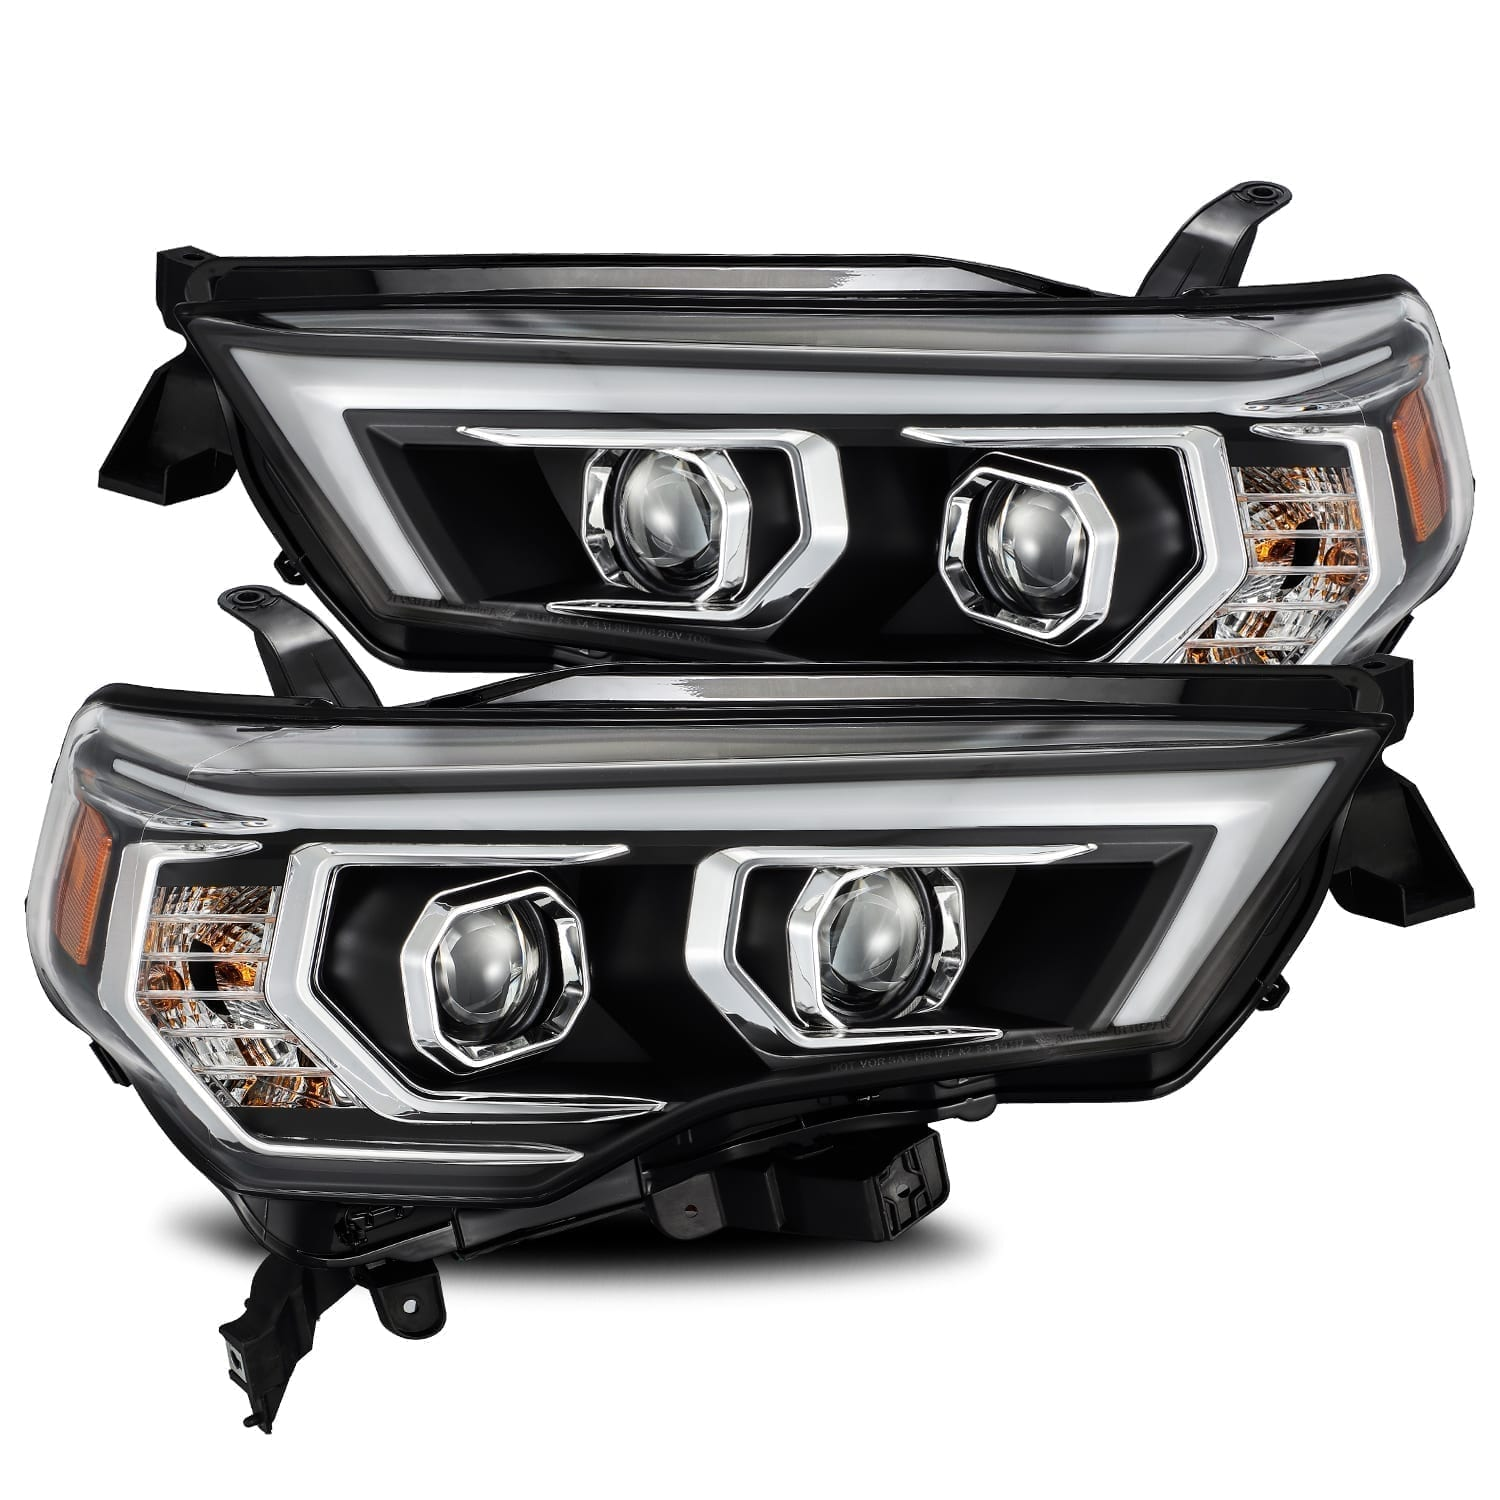 AlphaRex - PRO Series Projector Headlights Black - Toyota 4Runner 5th Gen 2014-2021 - 4x4 Runners